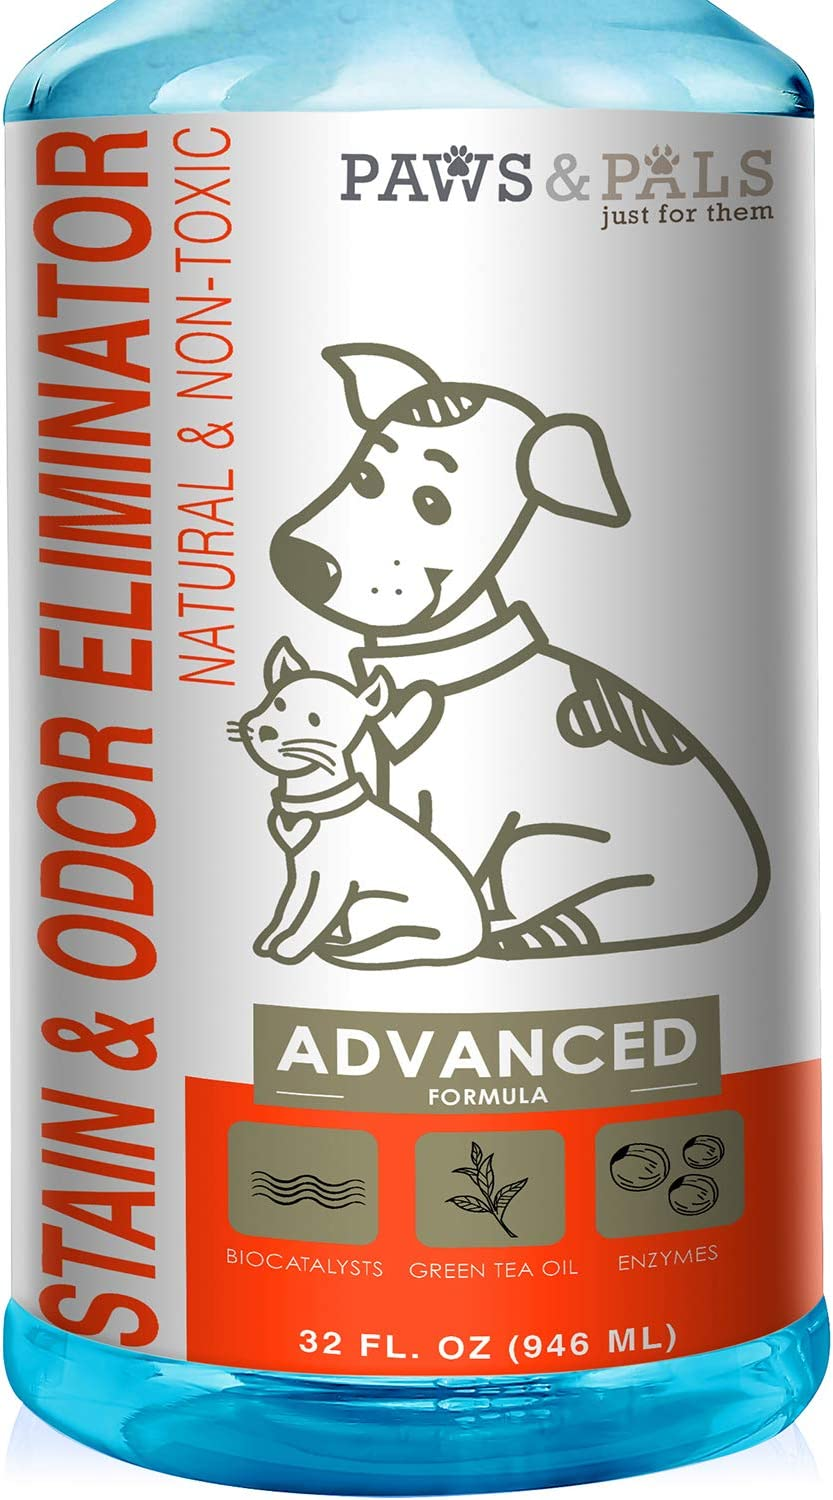 Pet Stain Enzyme Cleaner And Odor Eliminator 32oz Spray Dog Urine Remover For Carpet Rug Hard Wood Floor Stains Enzymatic Destroy Animal Puppy